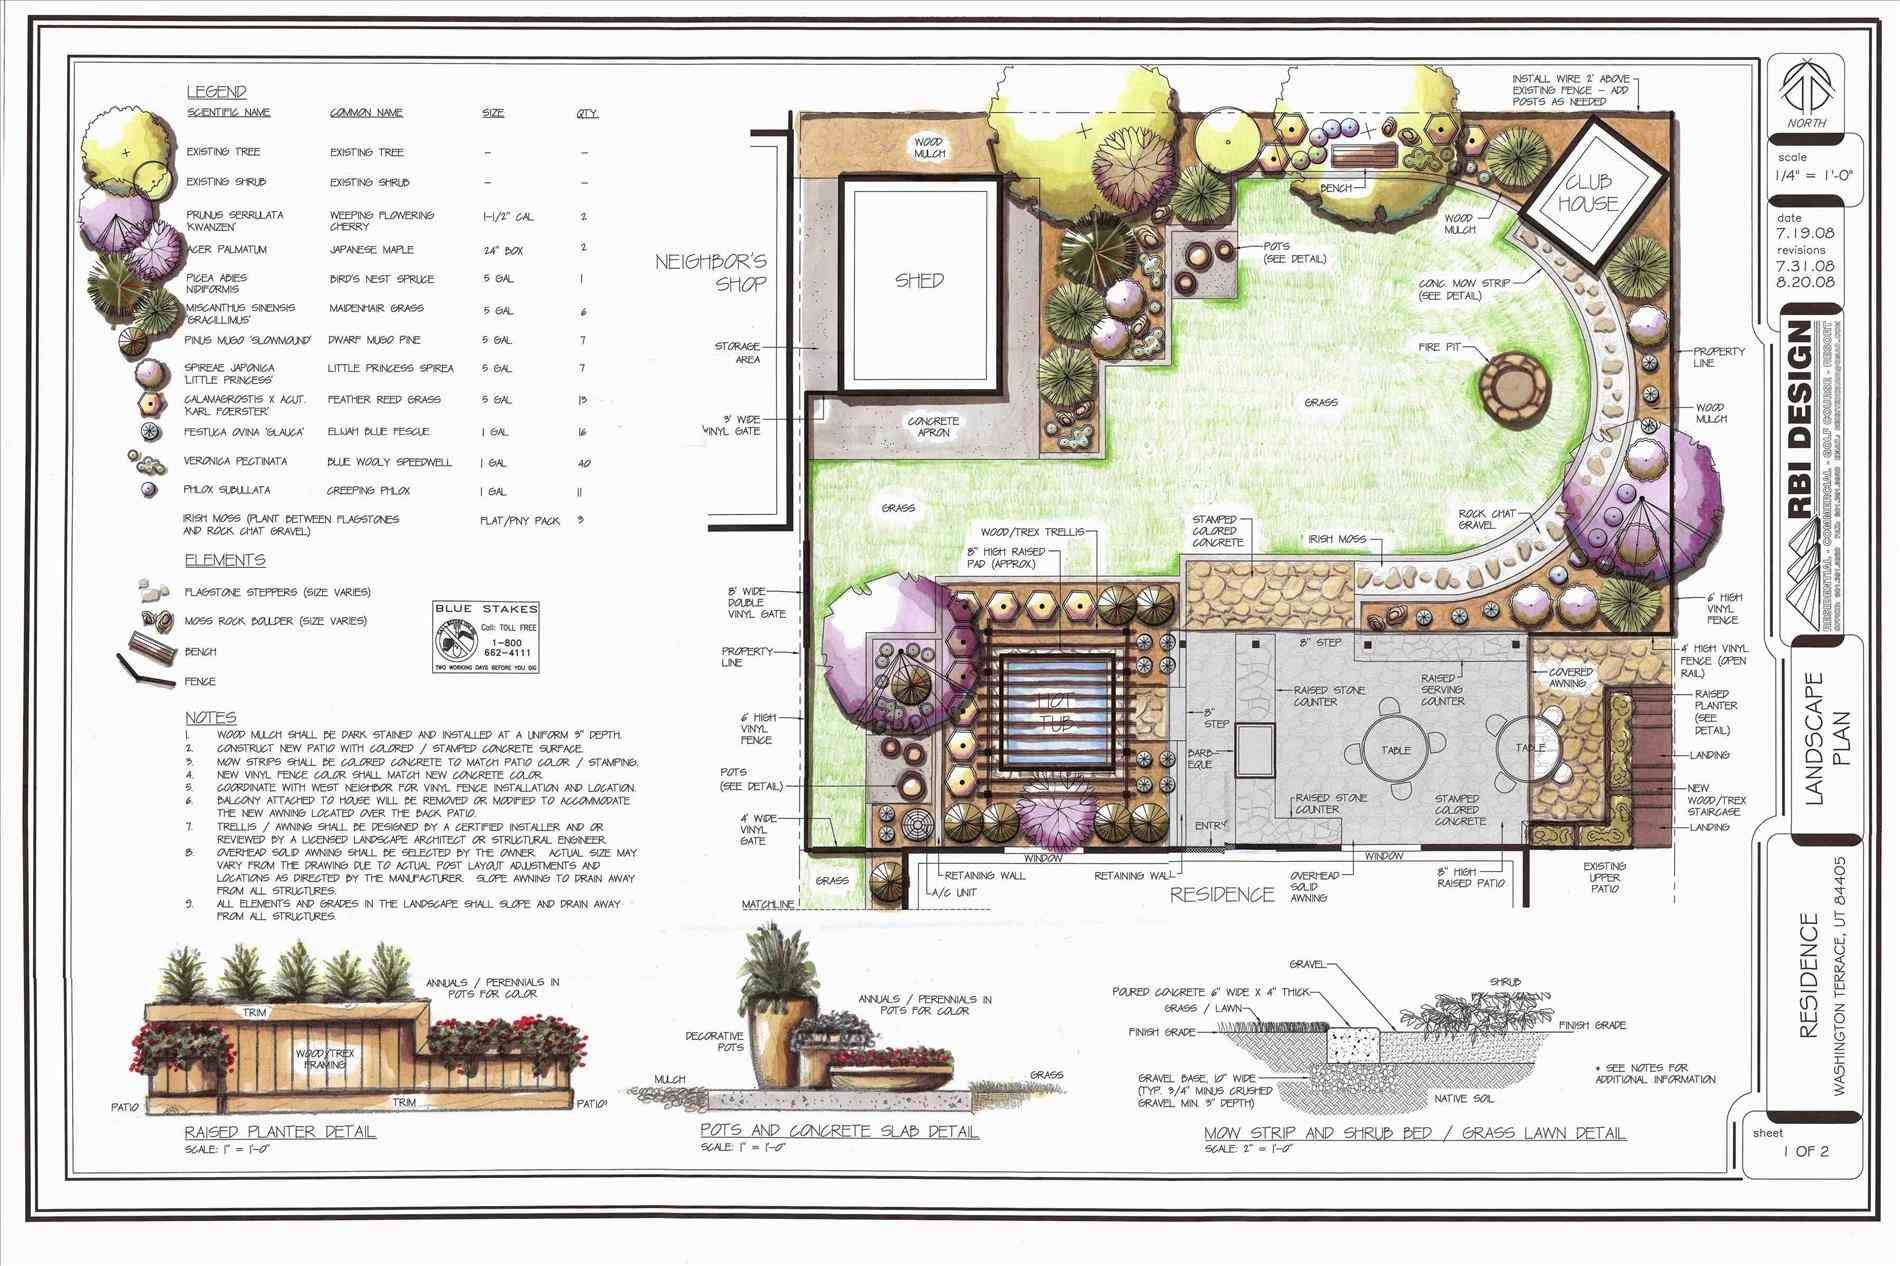 Design Drawings Ideas Garden Drawing On Landscape Designs Zone Backyards Appealing Backyard Plans Simple